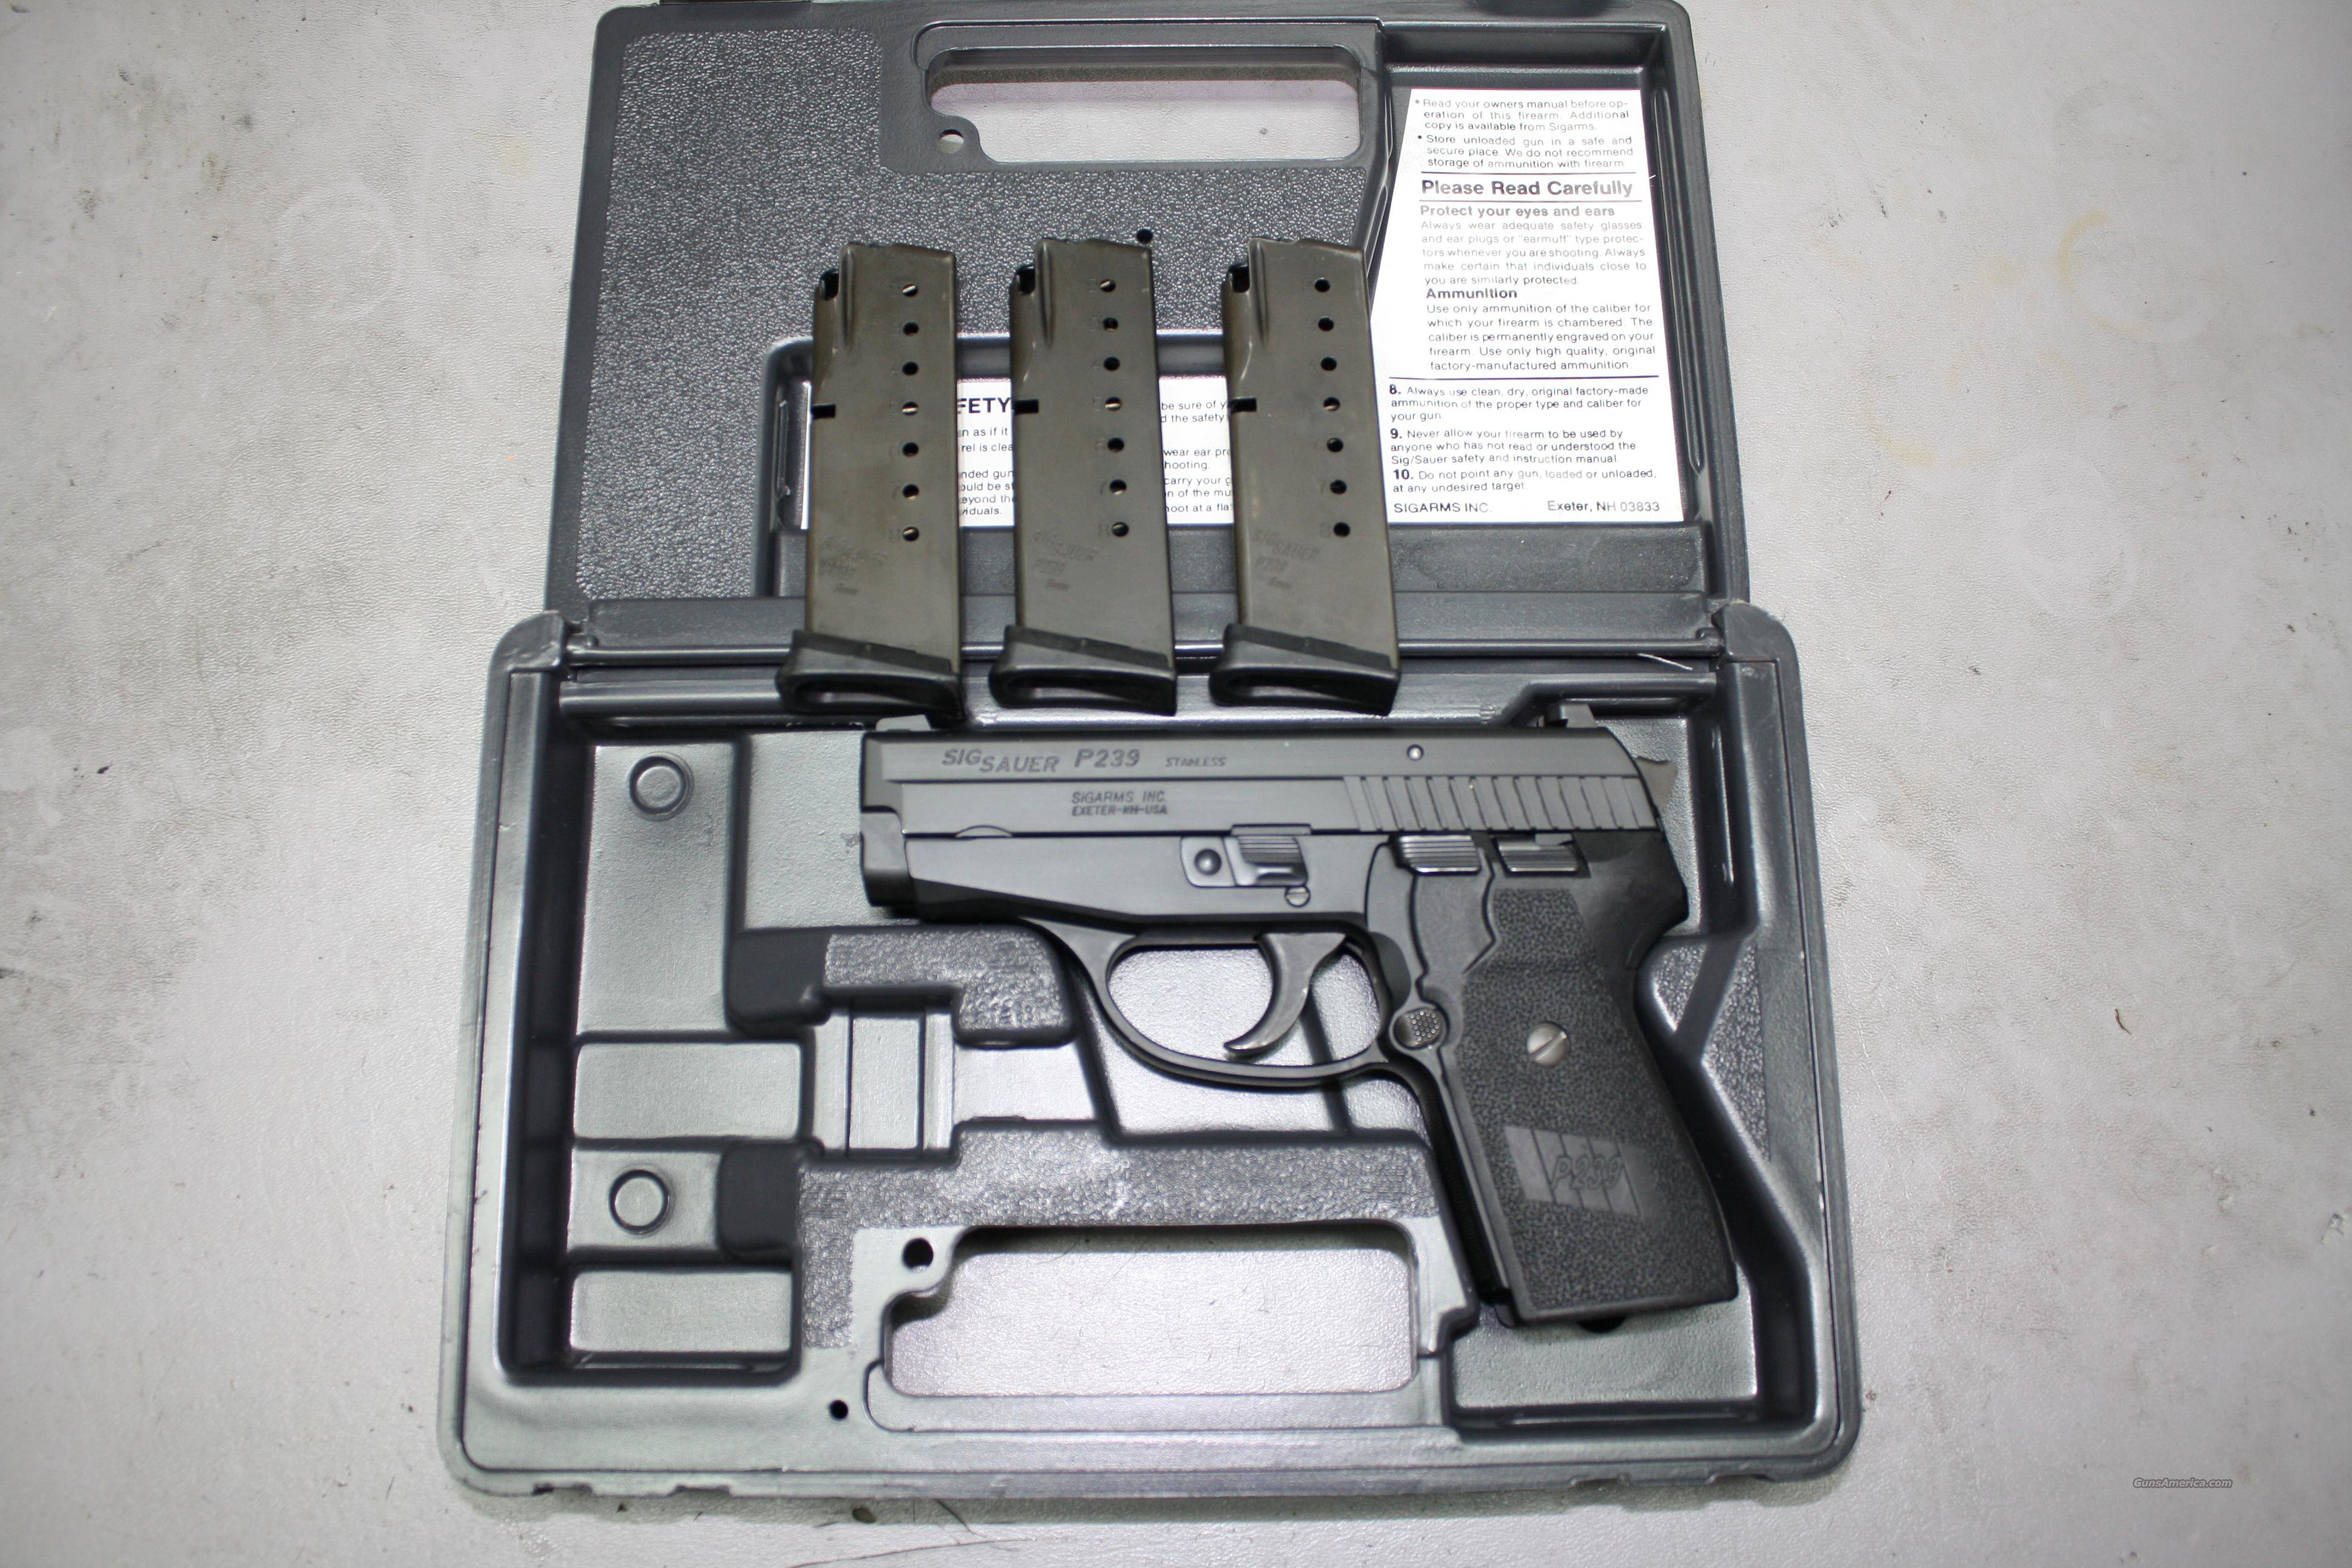 Used Sig P239 Compact 9mm Pistol with 3 Mags, Night Sights & Box  Guns > Pistols > Sig - Sauer/Sigarms Pistols > P239